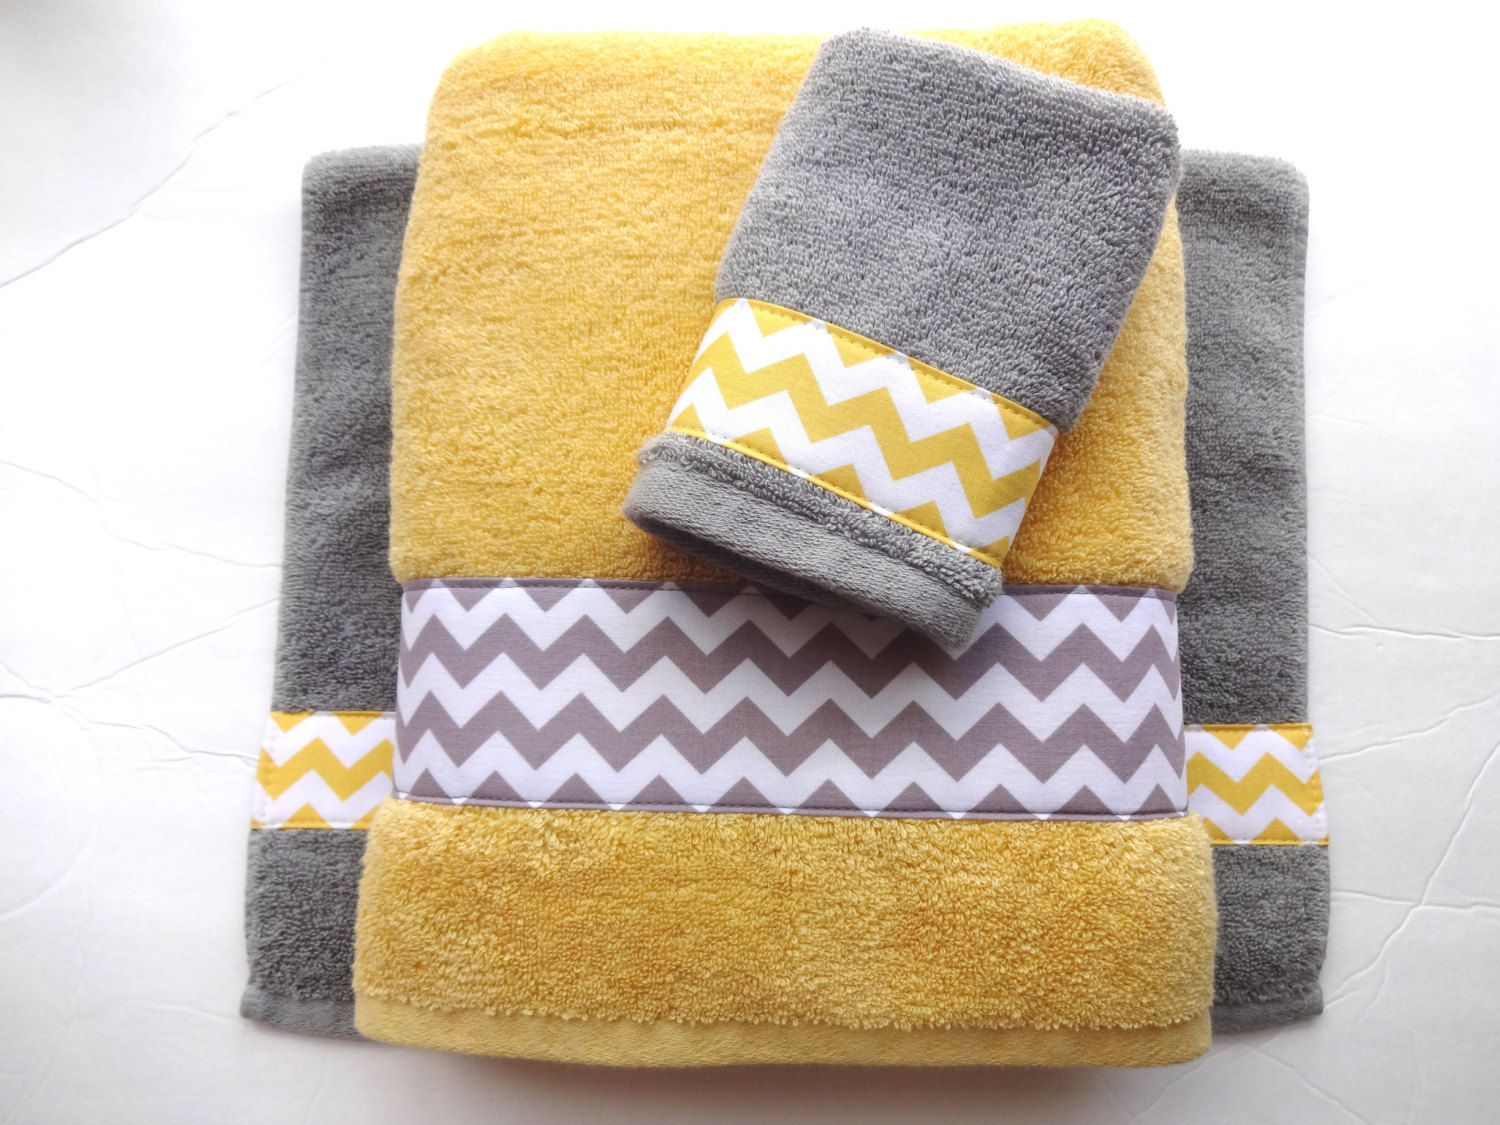 Pick Your Size Towel Yellow And Grey Towels Gray And Yellow - Yellow bath towels for small bathroom ideas